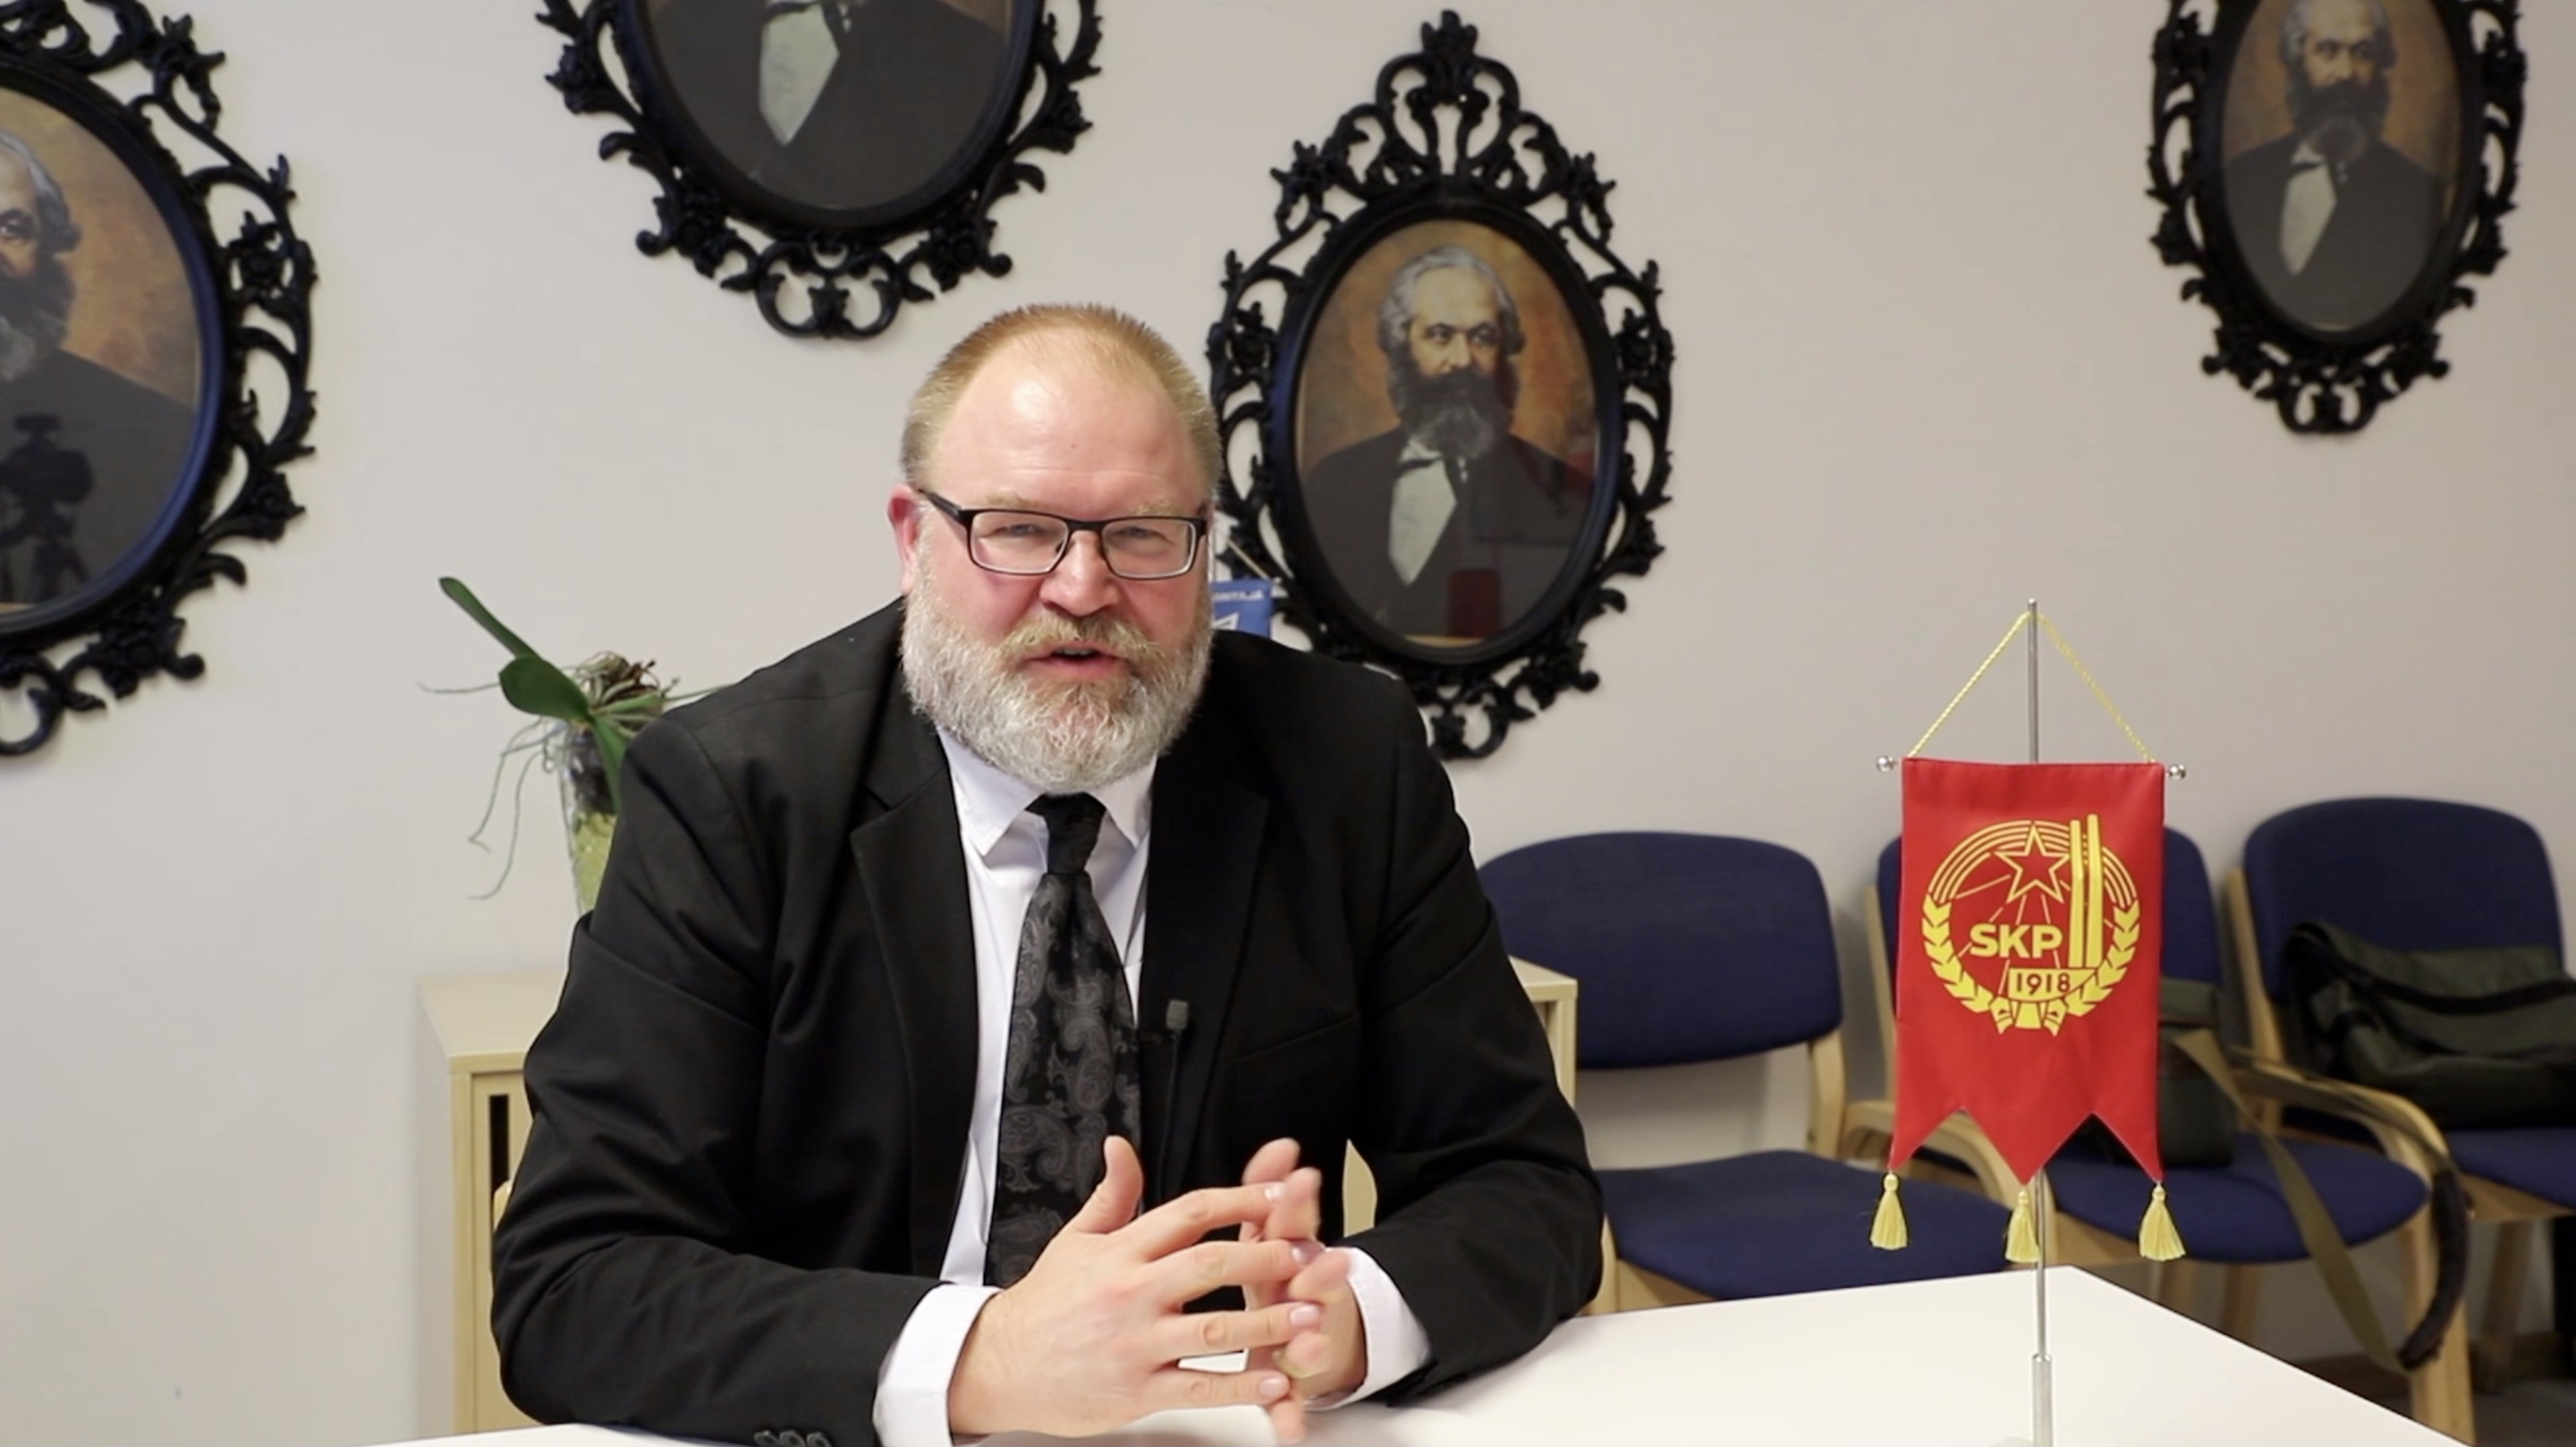 Interview: Facing changes, CPC always full of enthusiasm, motivation -- Finnish party chief